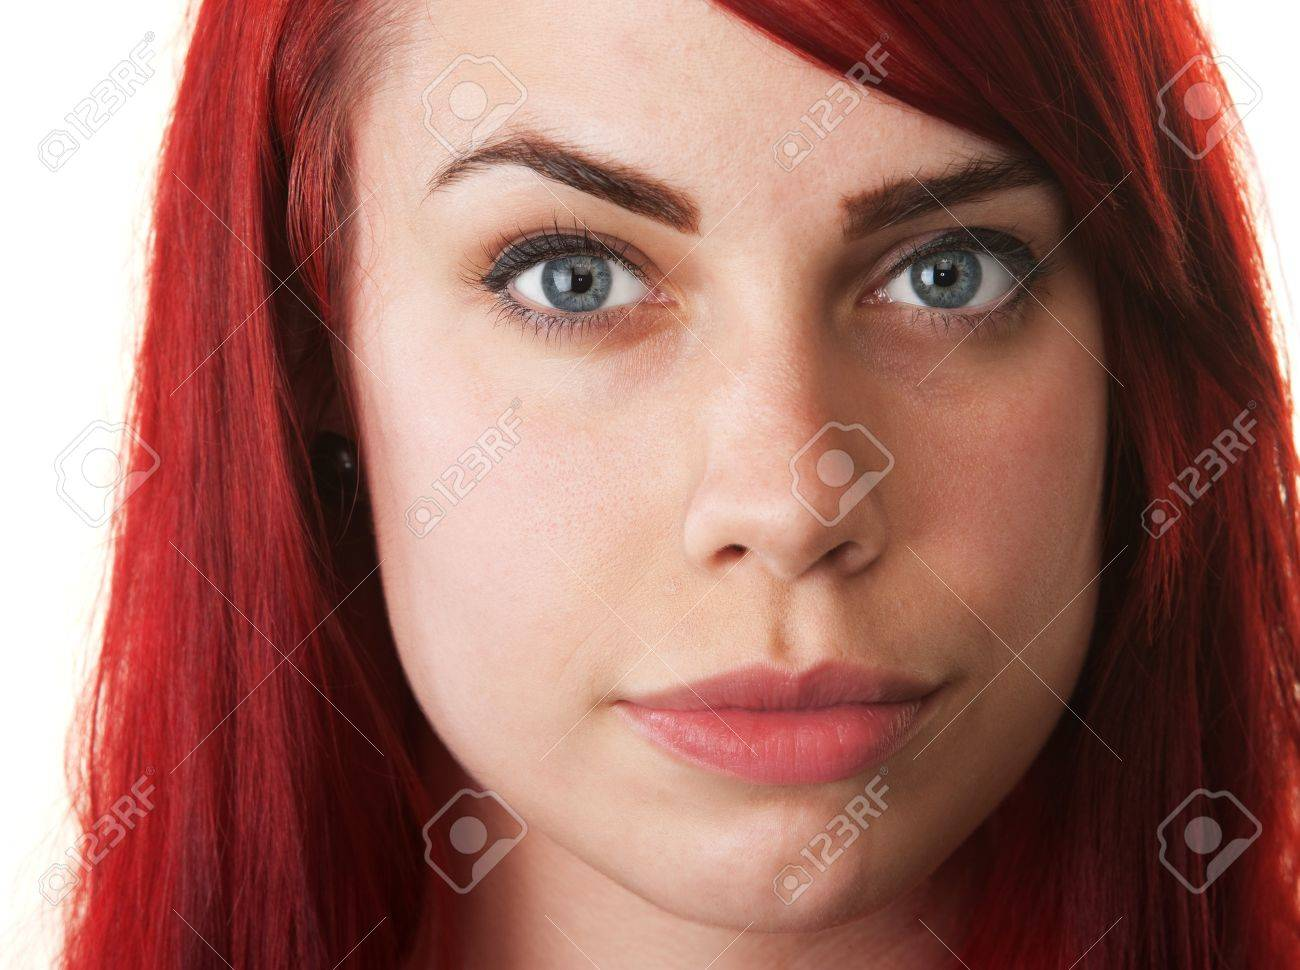 Hopeful young woman with red hair on isolated background Stock Photo - 16190299